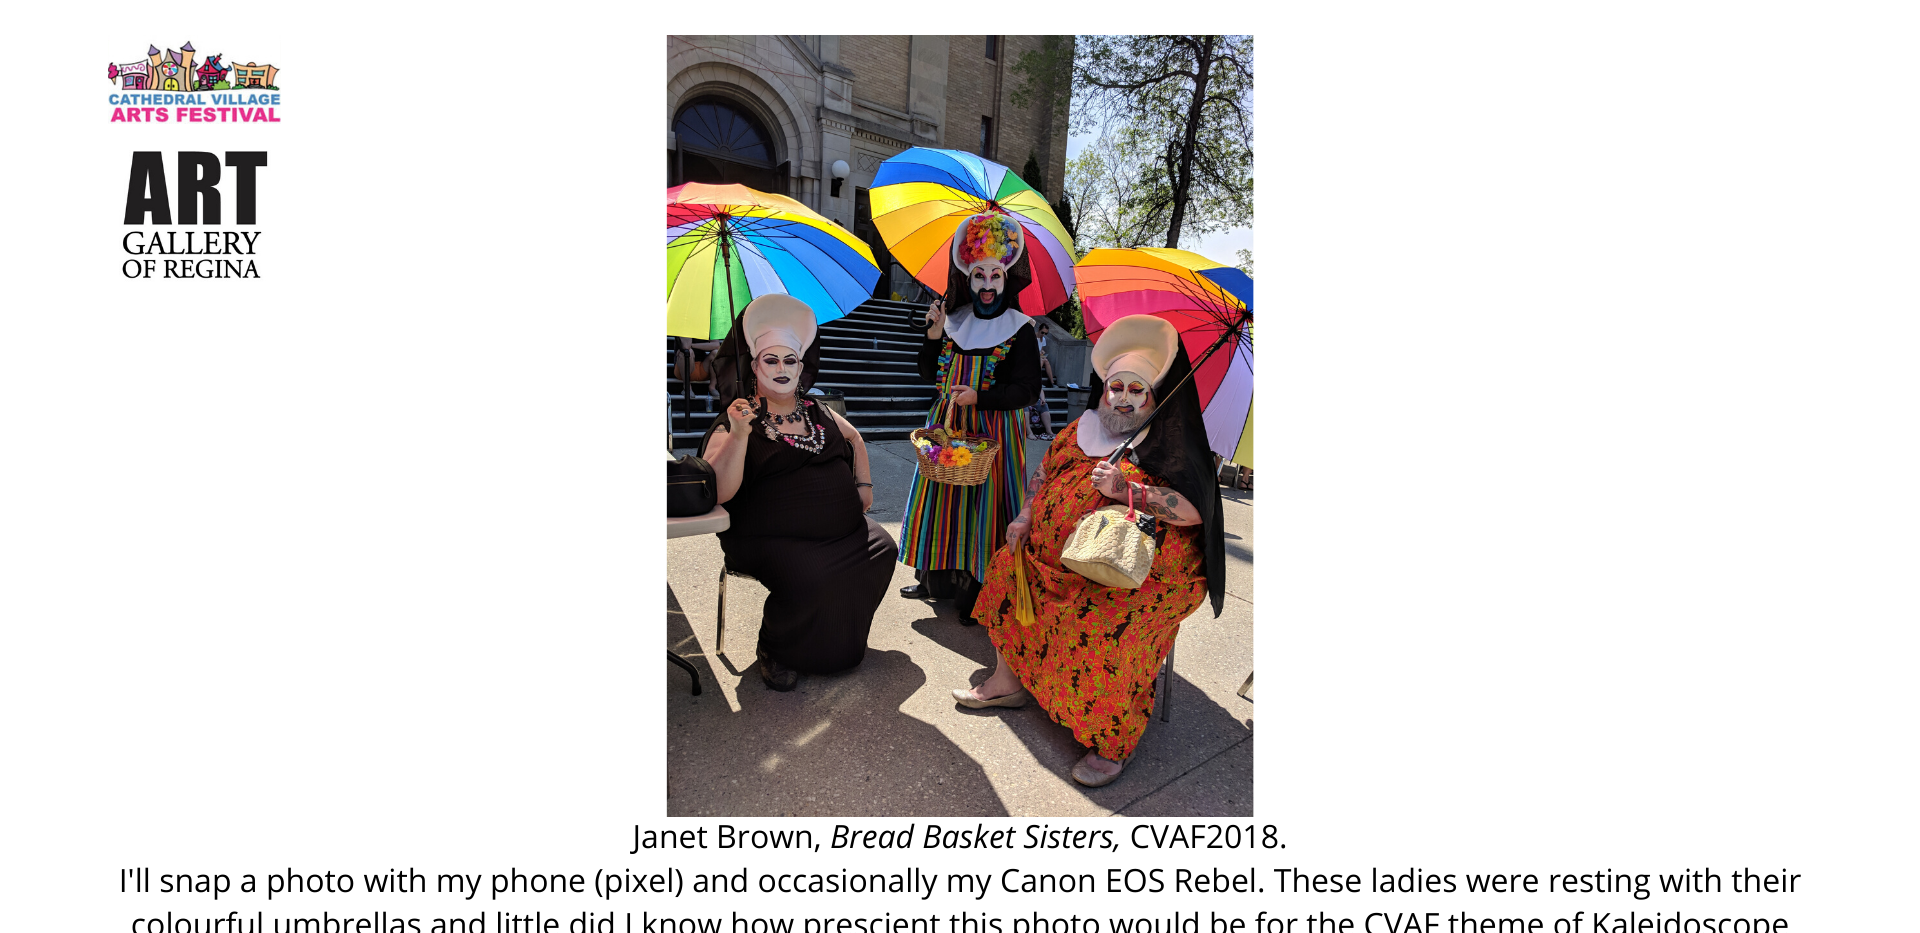 Janet Brown, Bread Basket Sisters, CVAF2018.